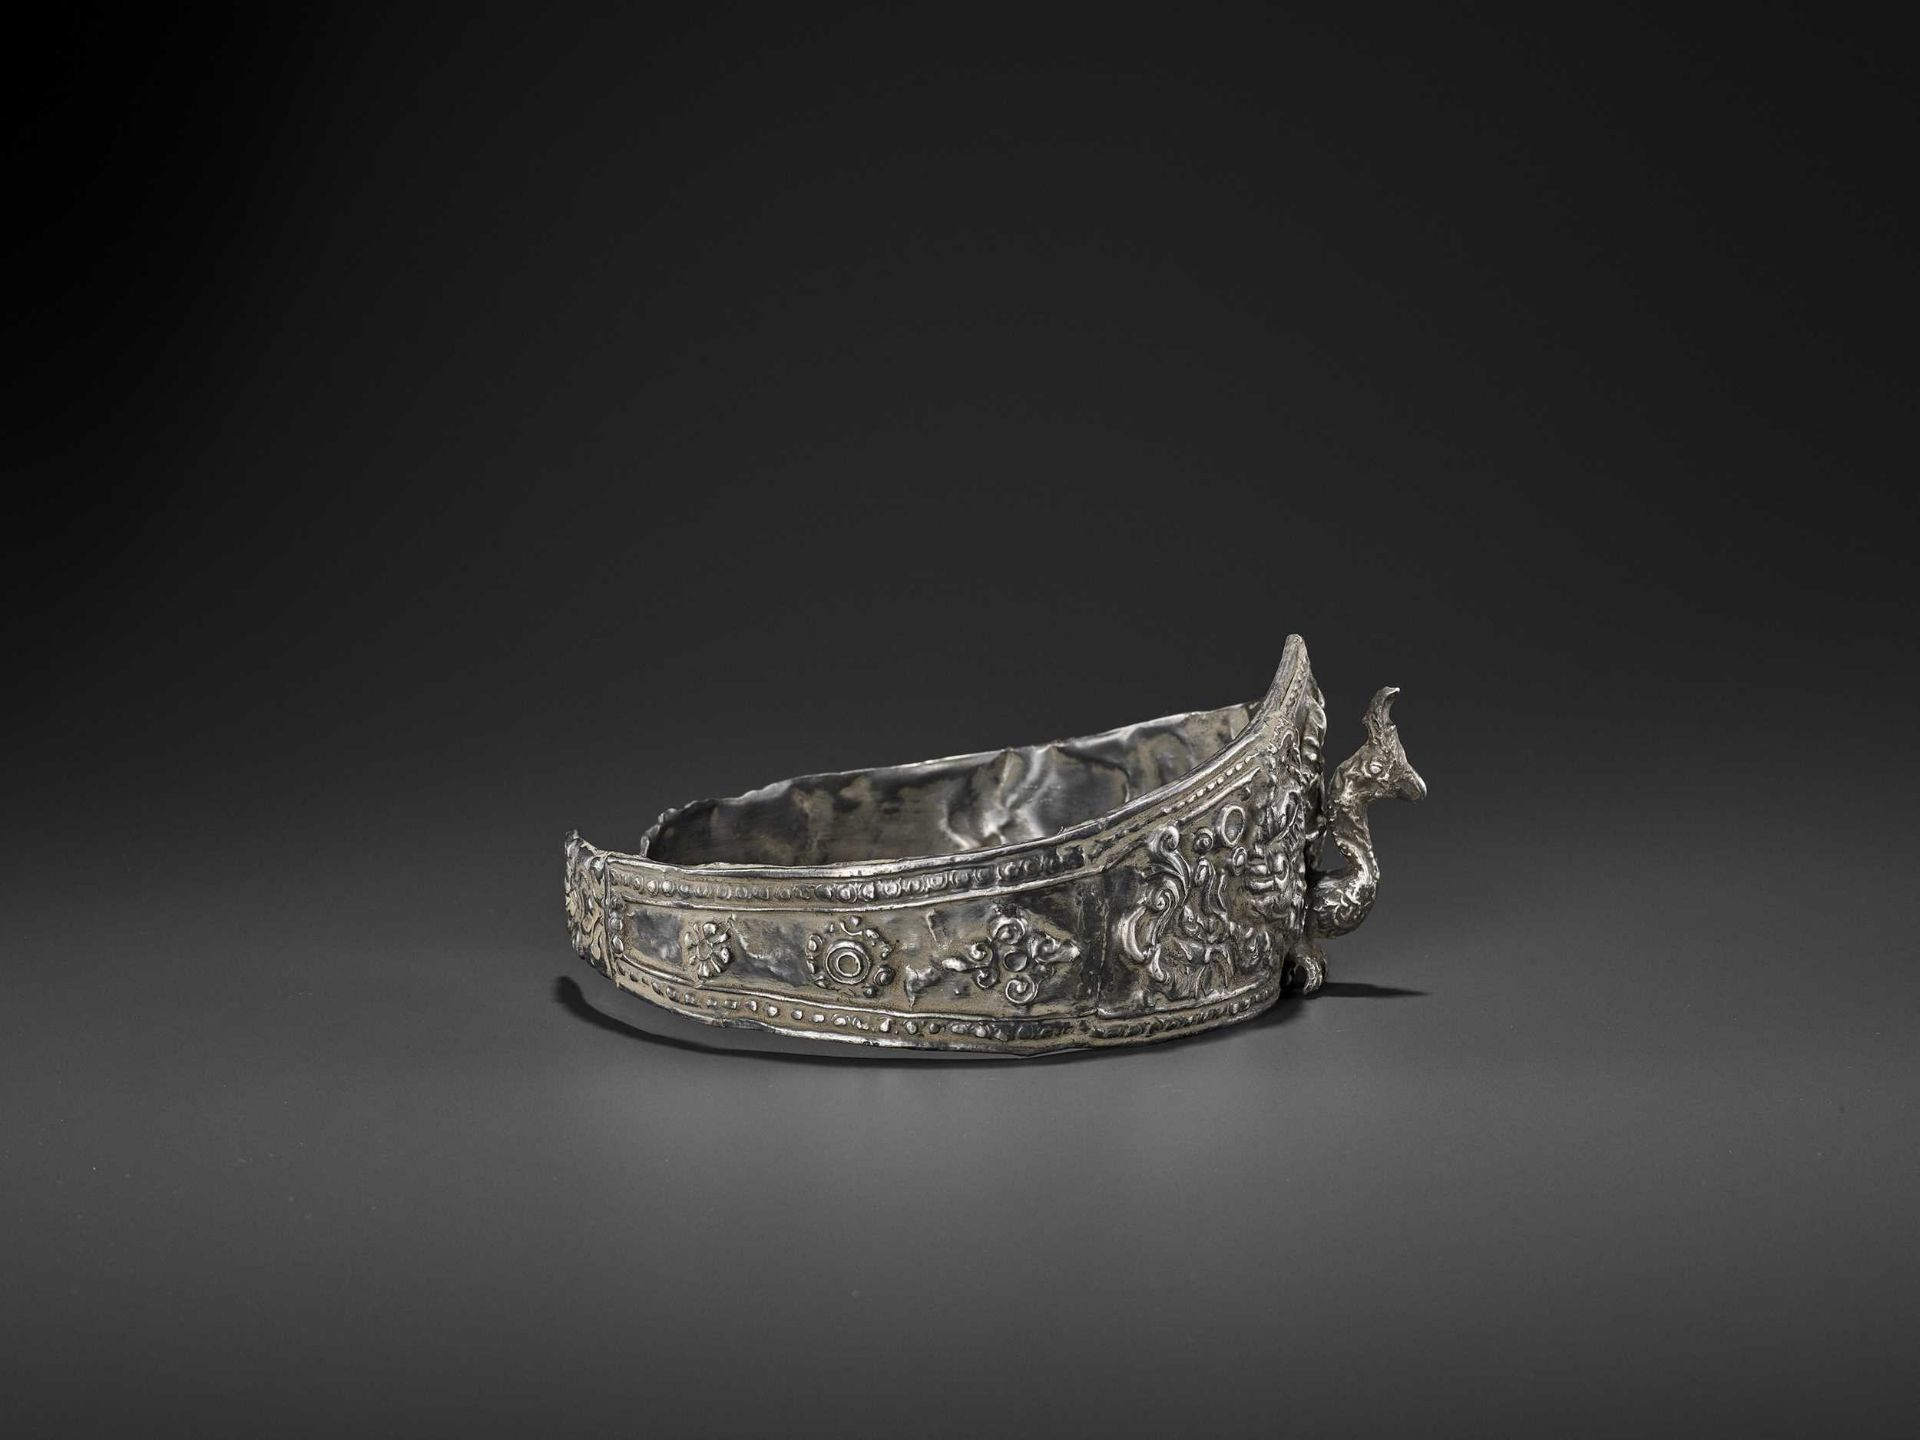 A LARGE ANDUNIQUE CHAM SILVERR EPOUSSÉ CROWN WITH A PHOENIX - Bild 6 aus 8